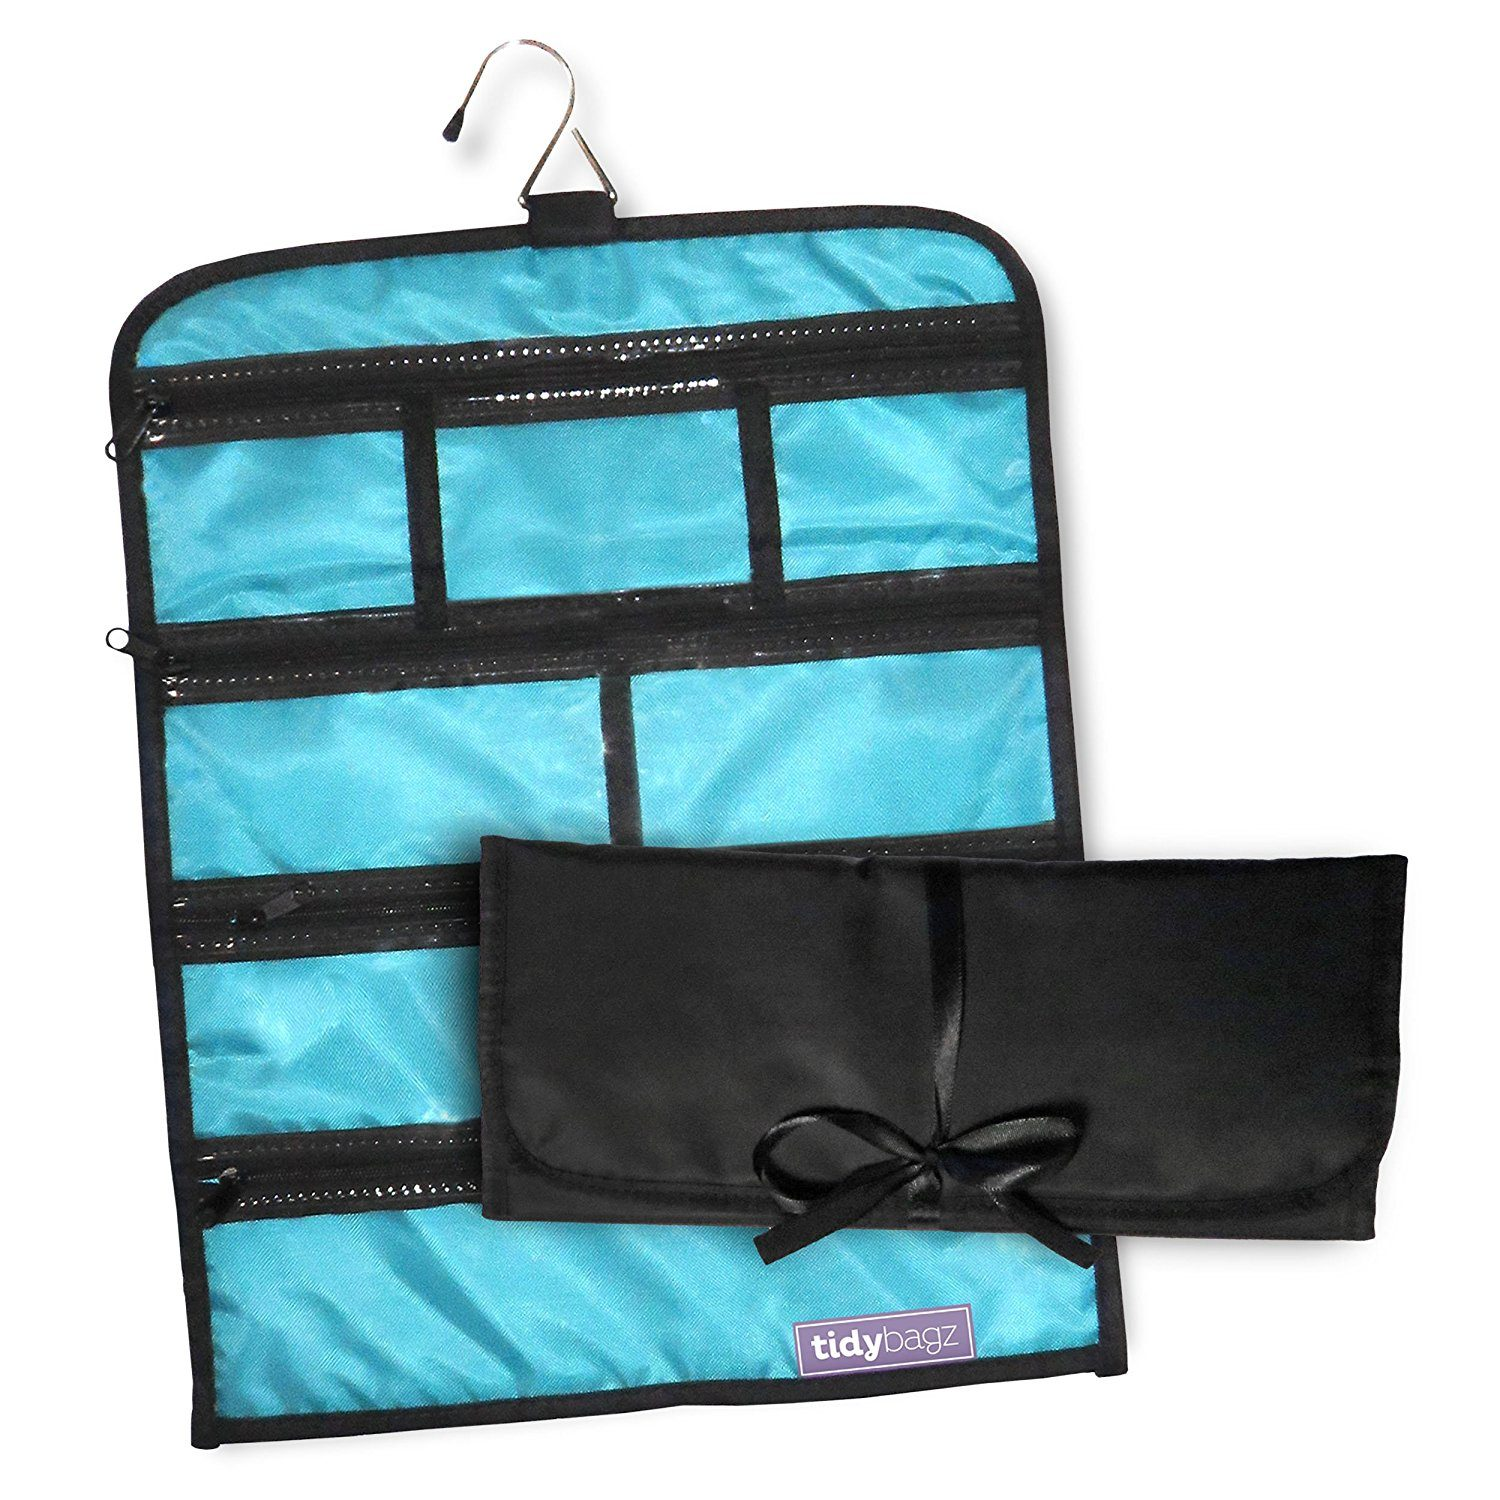 Best Travel Case For Jewelry